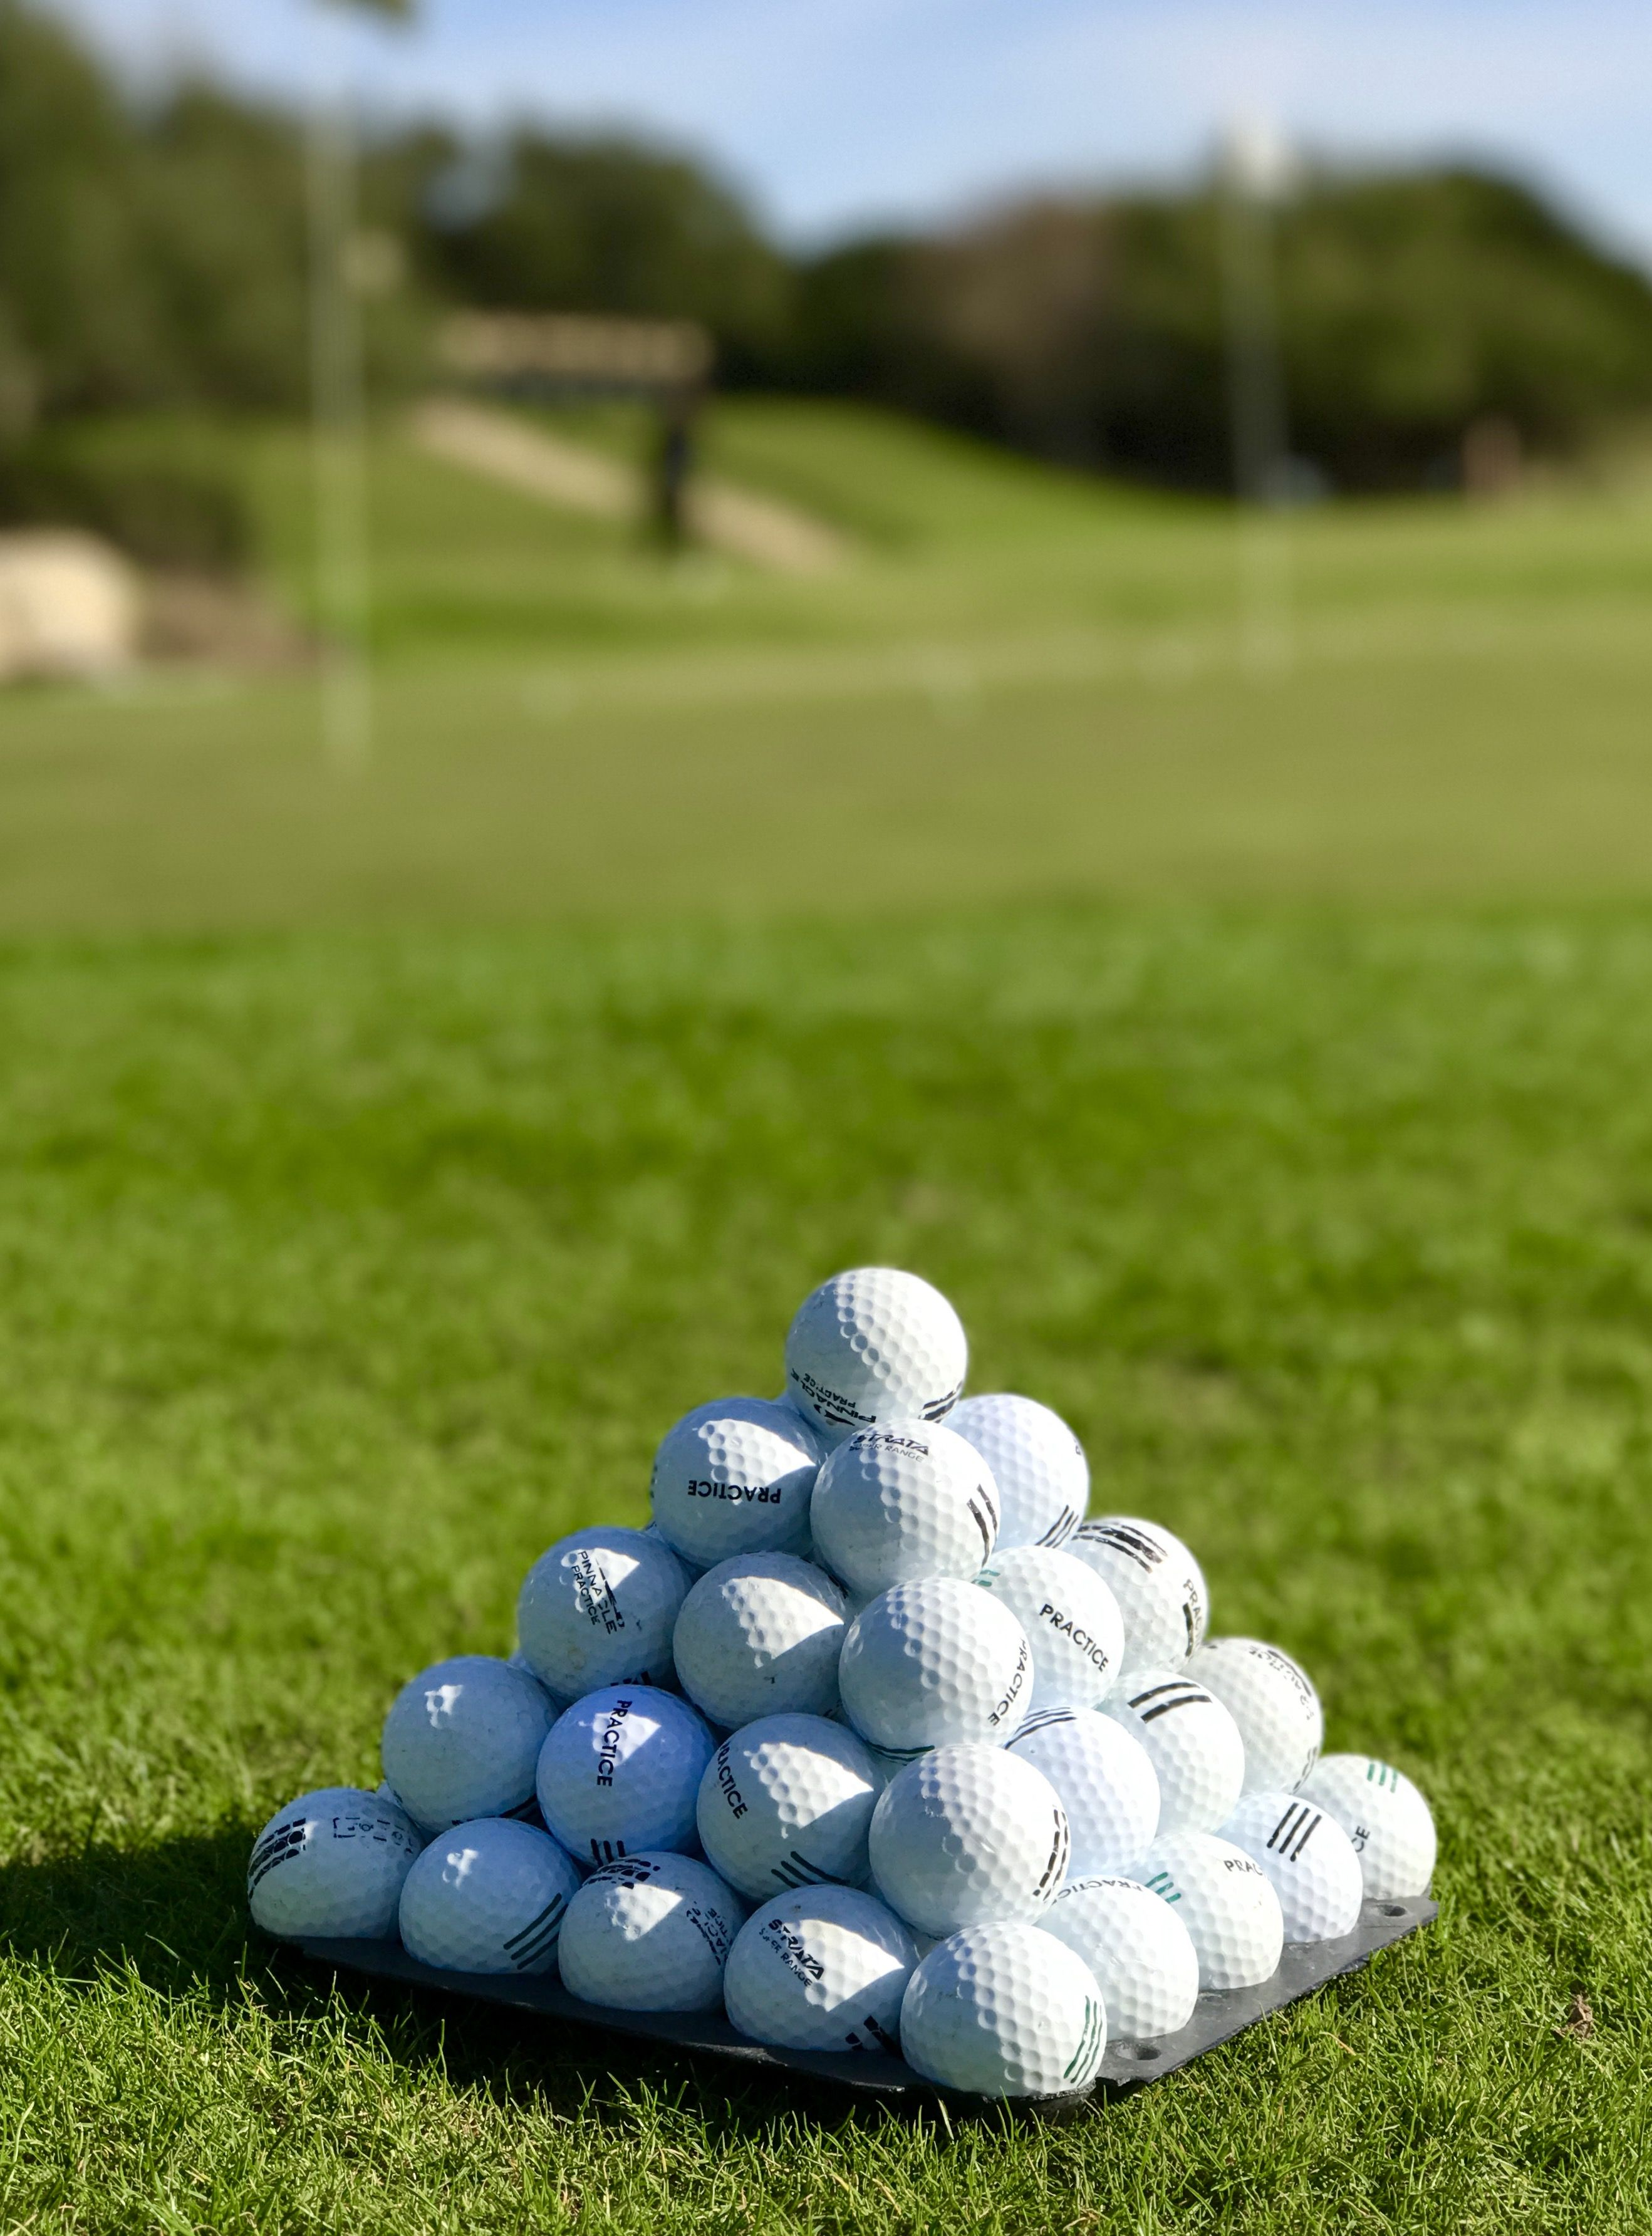 Golf gear from the La Cantera pro shop is the perfect gift for him this Valentine's Day. For questions call 210.558.4653